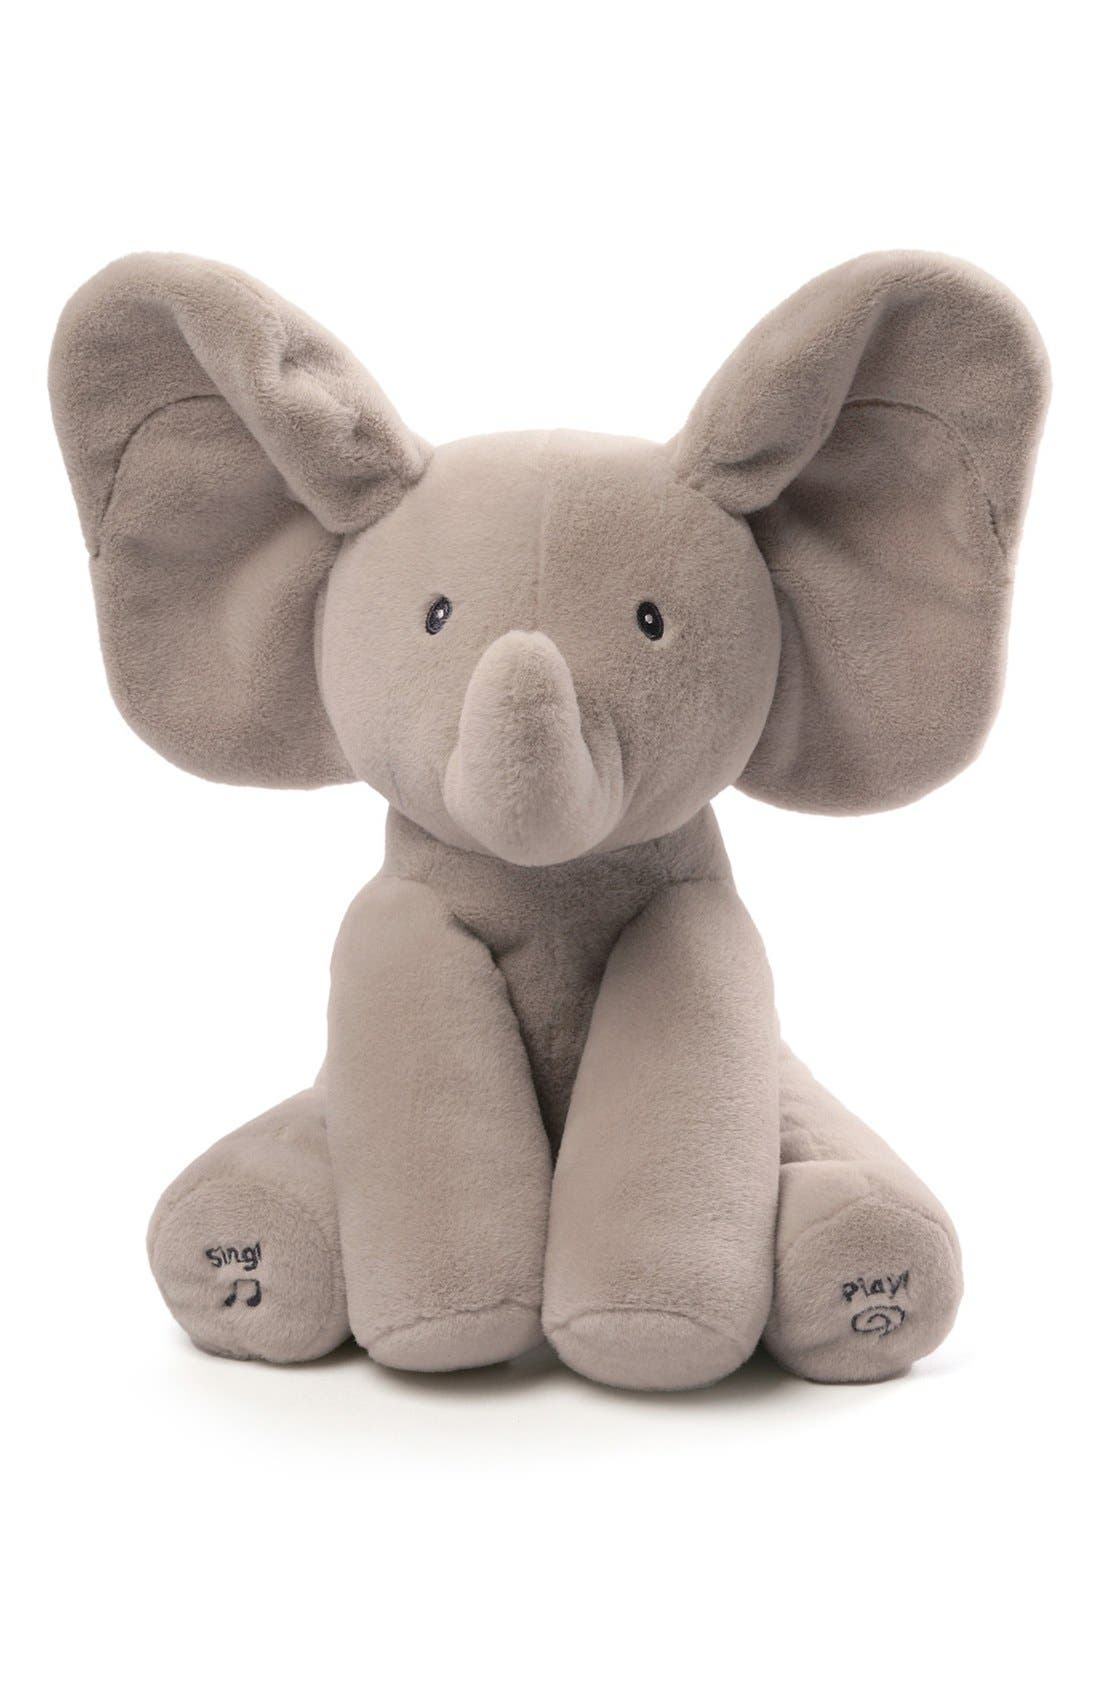 Baby Gund 'Flappy The Elephant' Musical Elephant